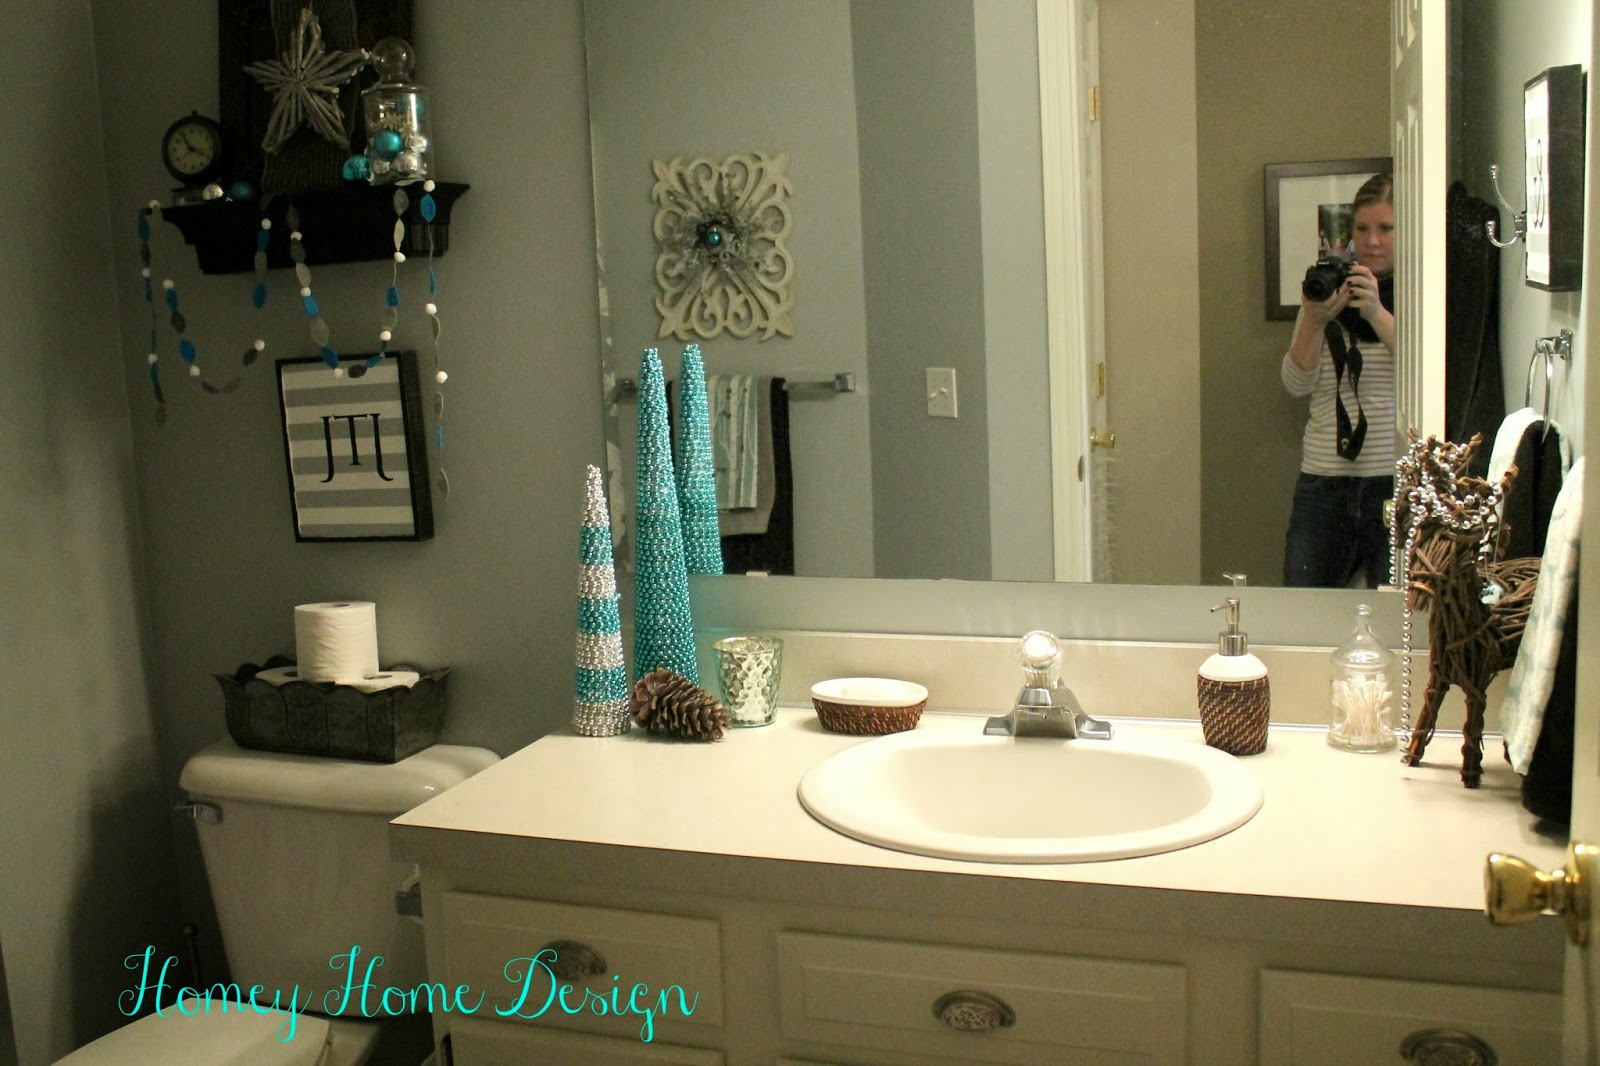 Homey home design bathroom christmas ideas for Toilet decor ideas